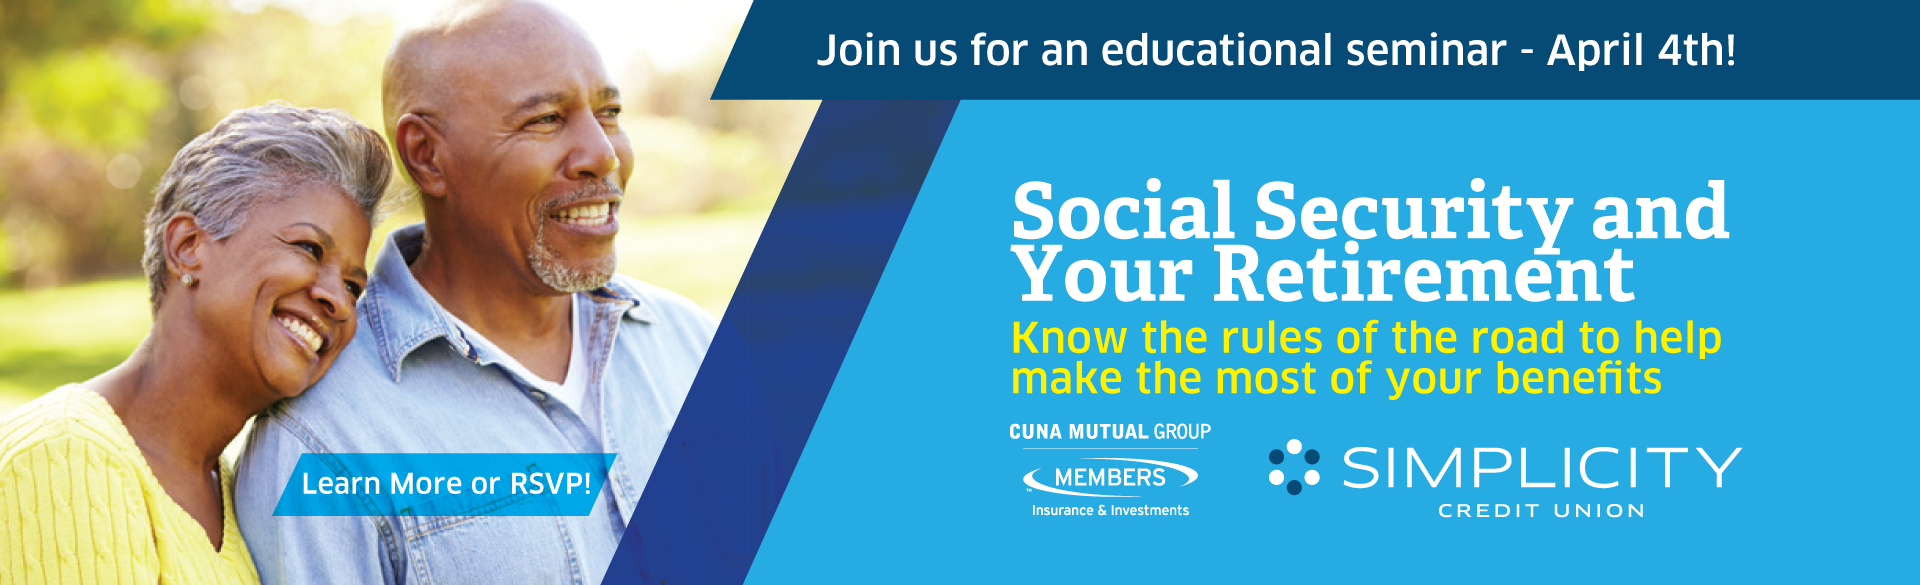 Join us for a FREE educational seminar - Social Security and Your Retirement - Learn more or RSVP!